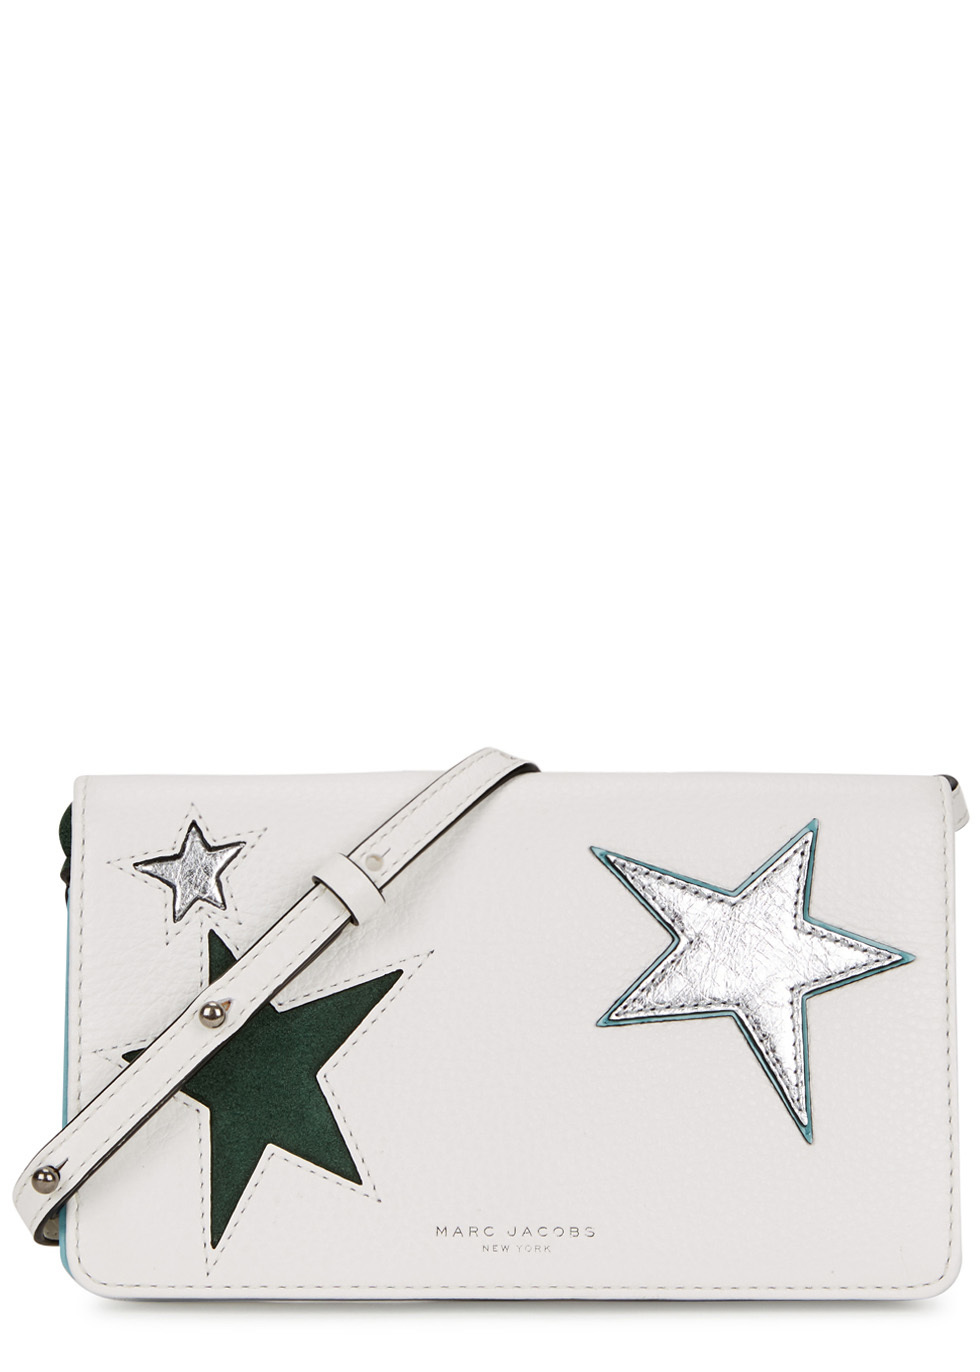 Star Patchwork Leather Cross Body Bag - predominant colour: white; secondary colour: silver; occasions: evening; type of pattern: light; style: clutch; length: shoulder (tucks under arm); size: mini; material: leather; finish: plain; pattern: patterned/print; season: a/w 2016; wardrobe: event